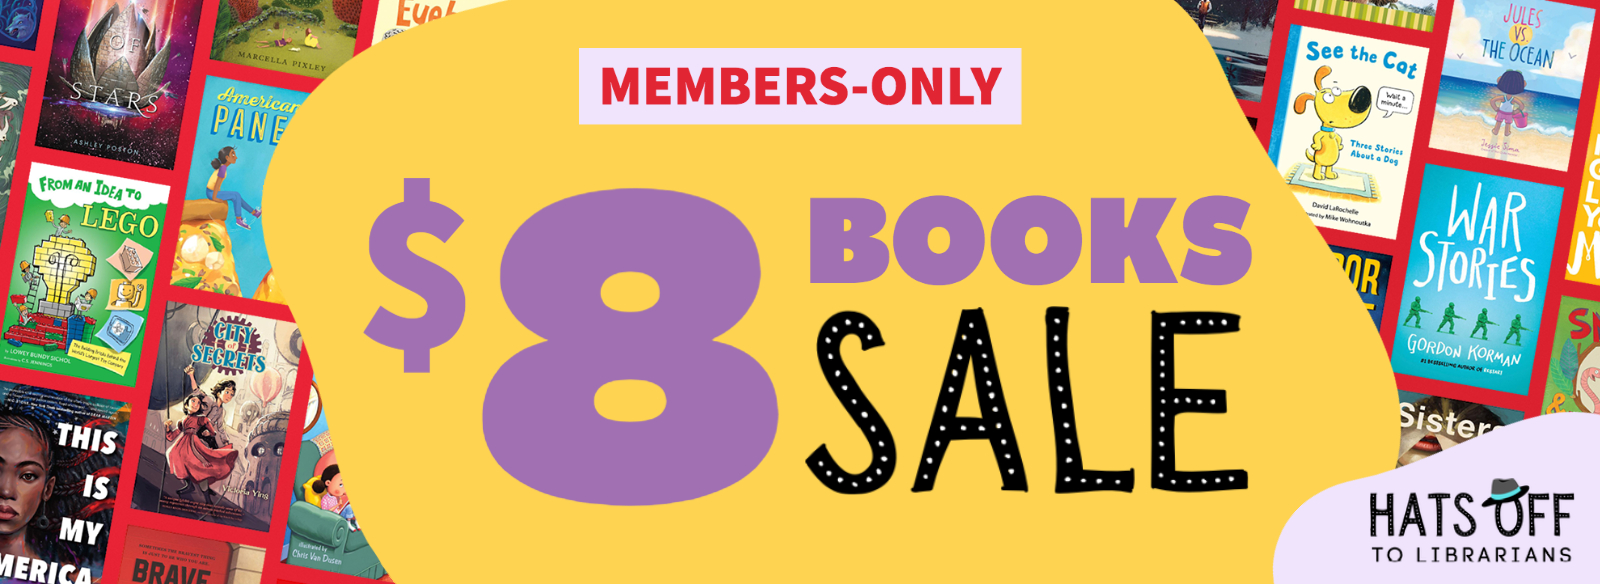 Members-only $8 book sale